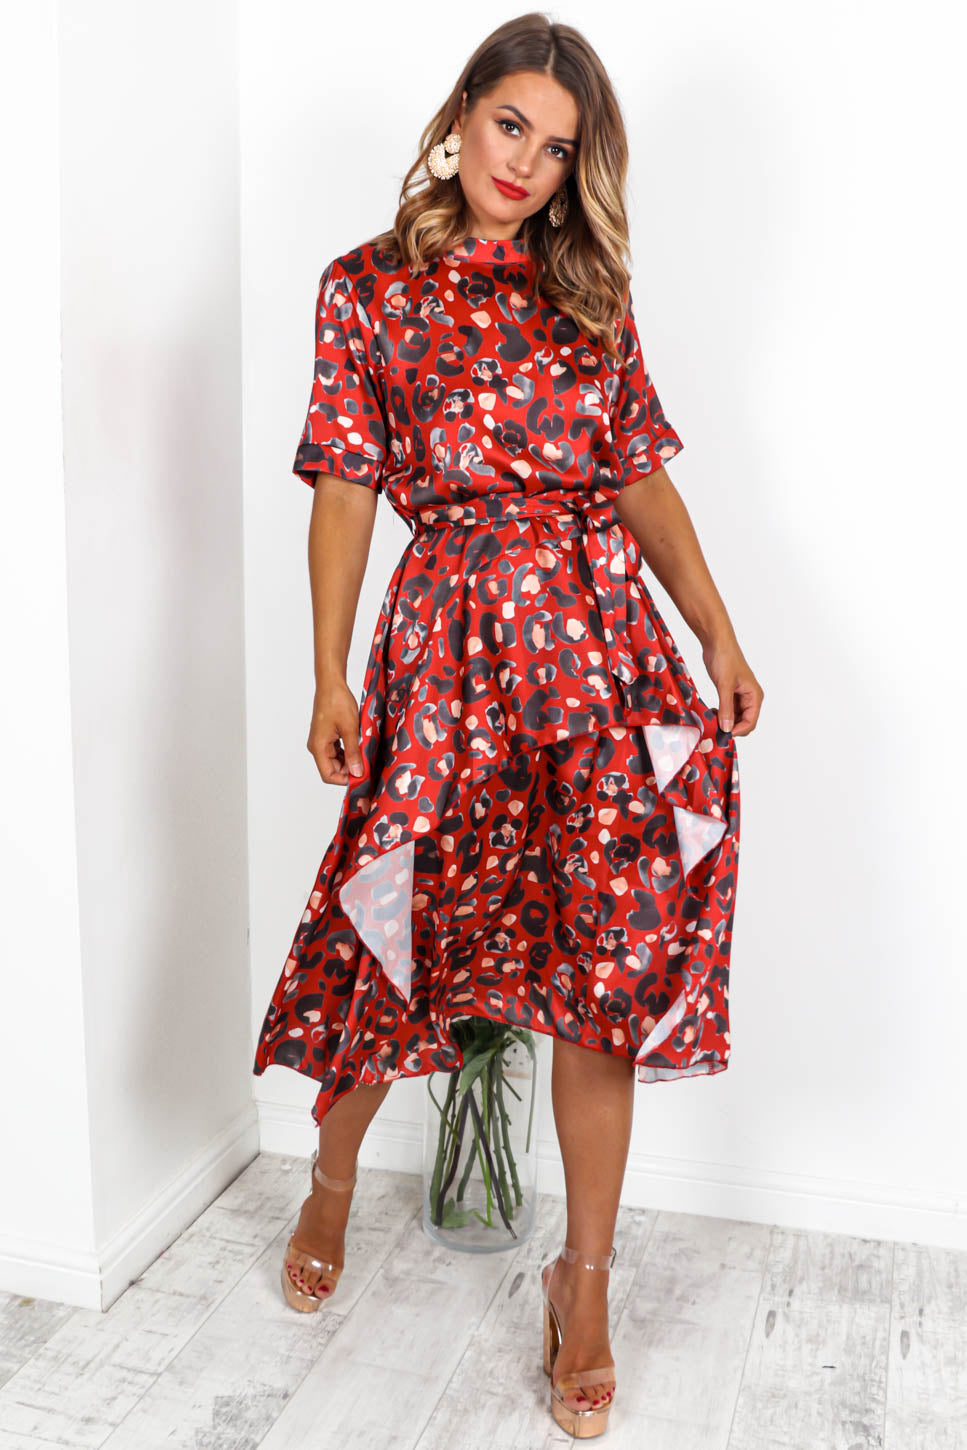 Sweet Wild Of Mine - Midi Dress In LEOPARD/RED